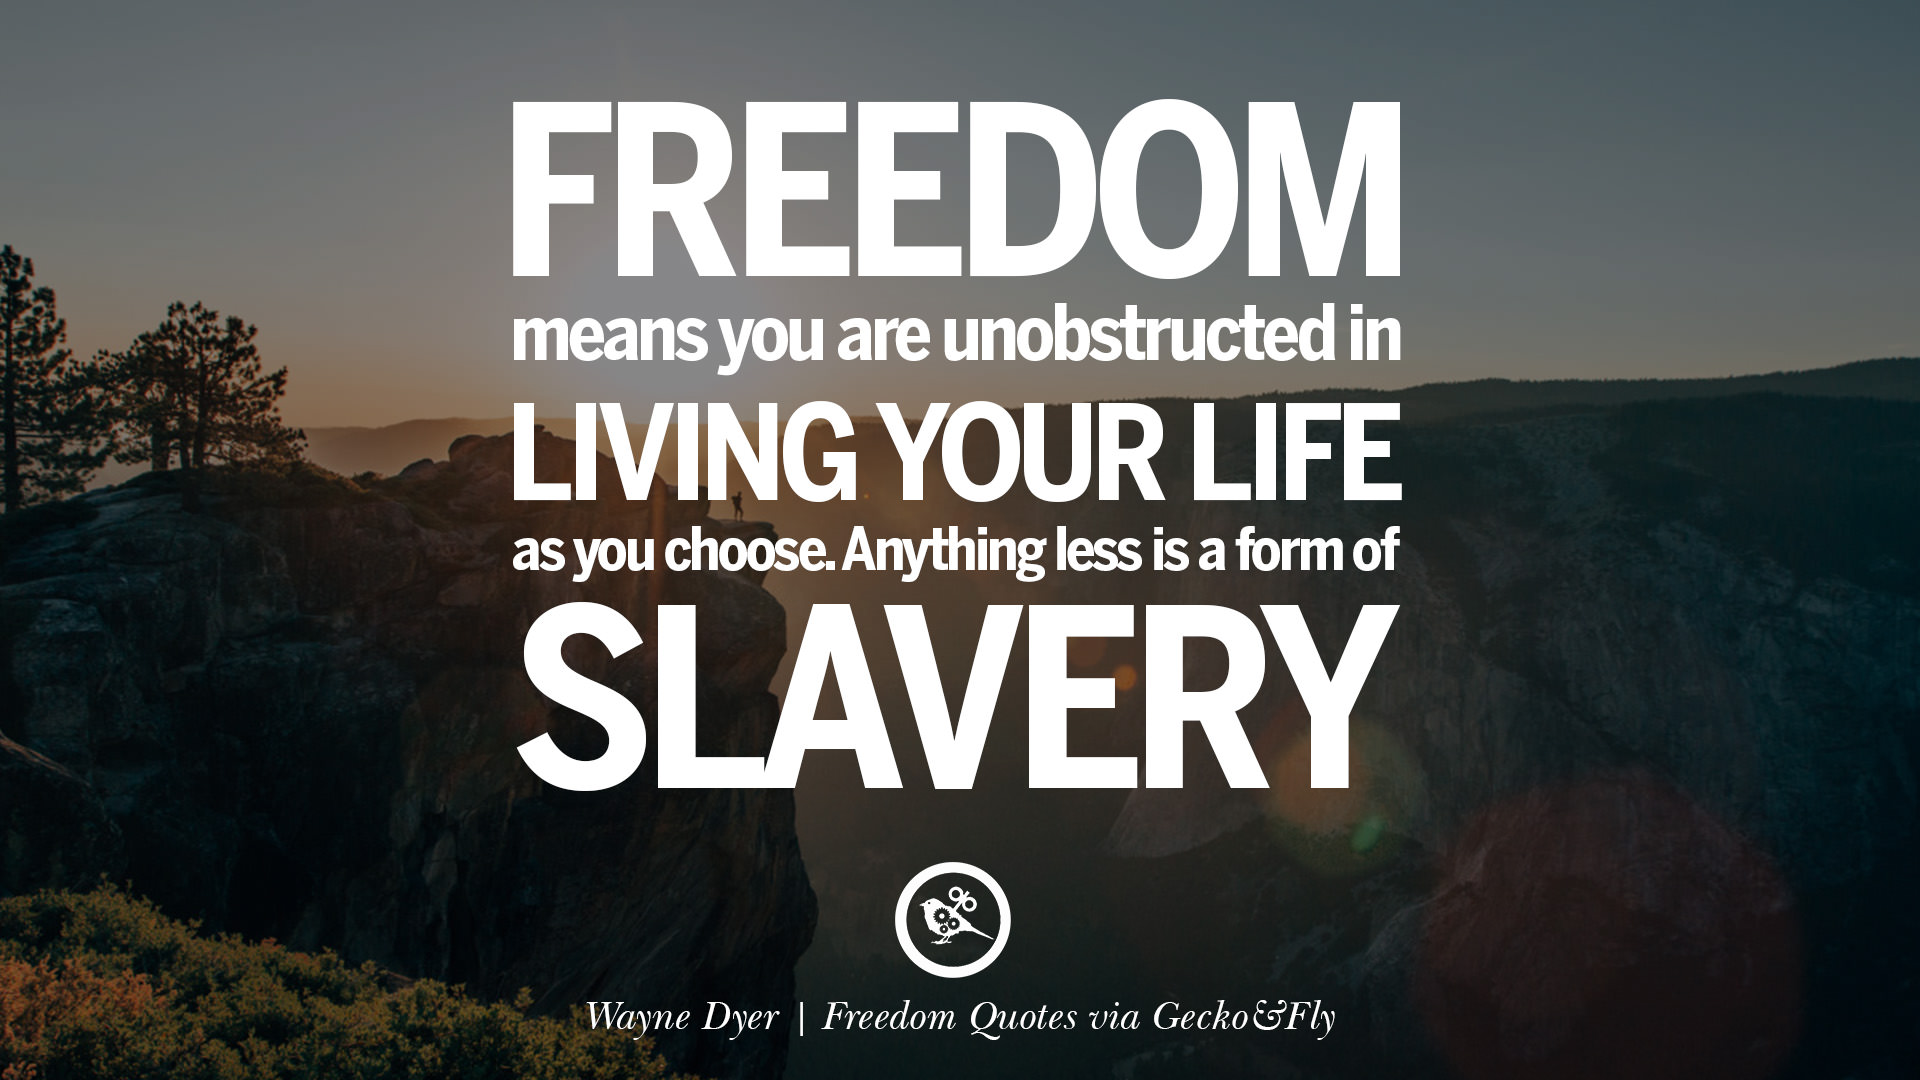 8 Inspiring Quotes About Freedom And Liberty